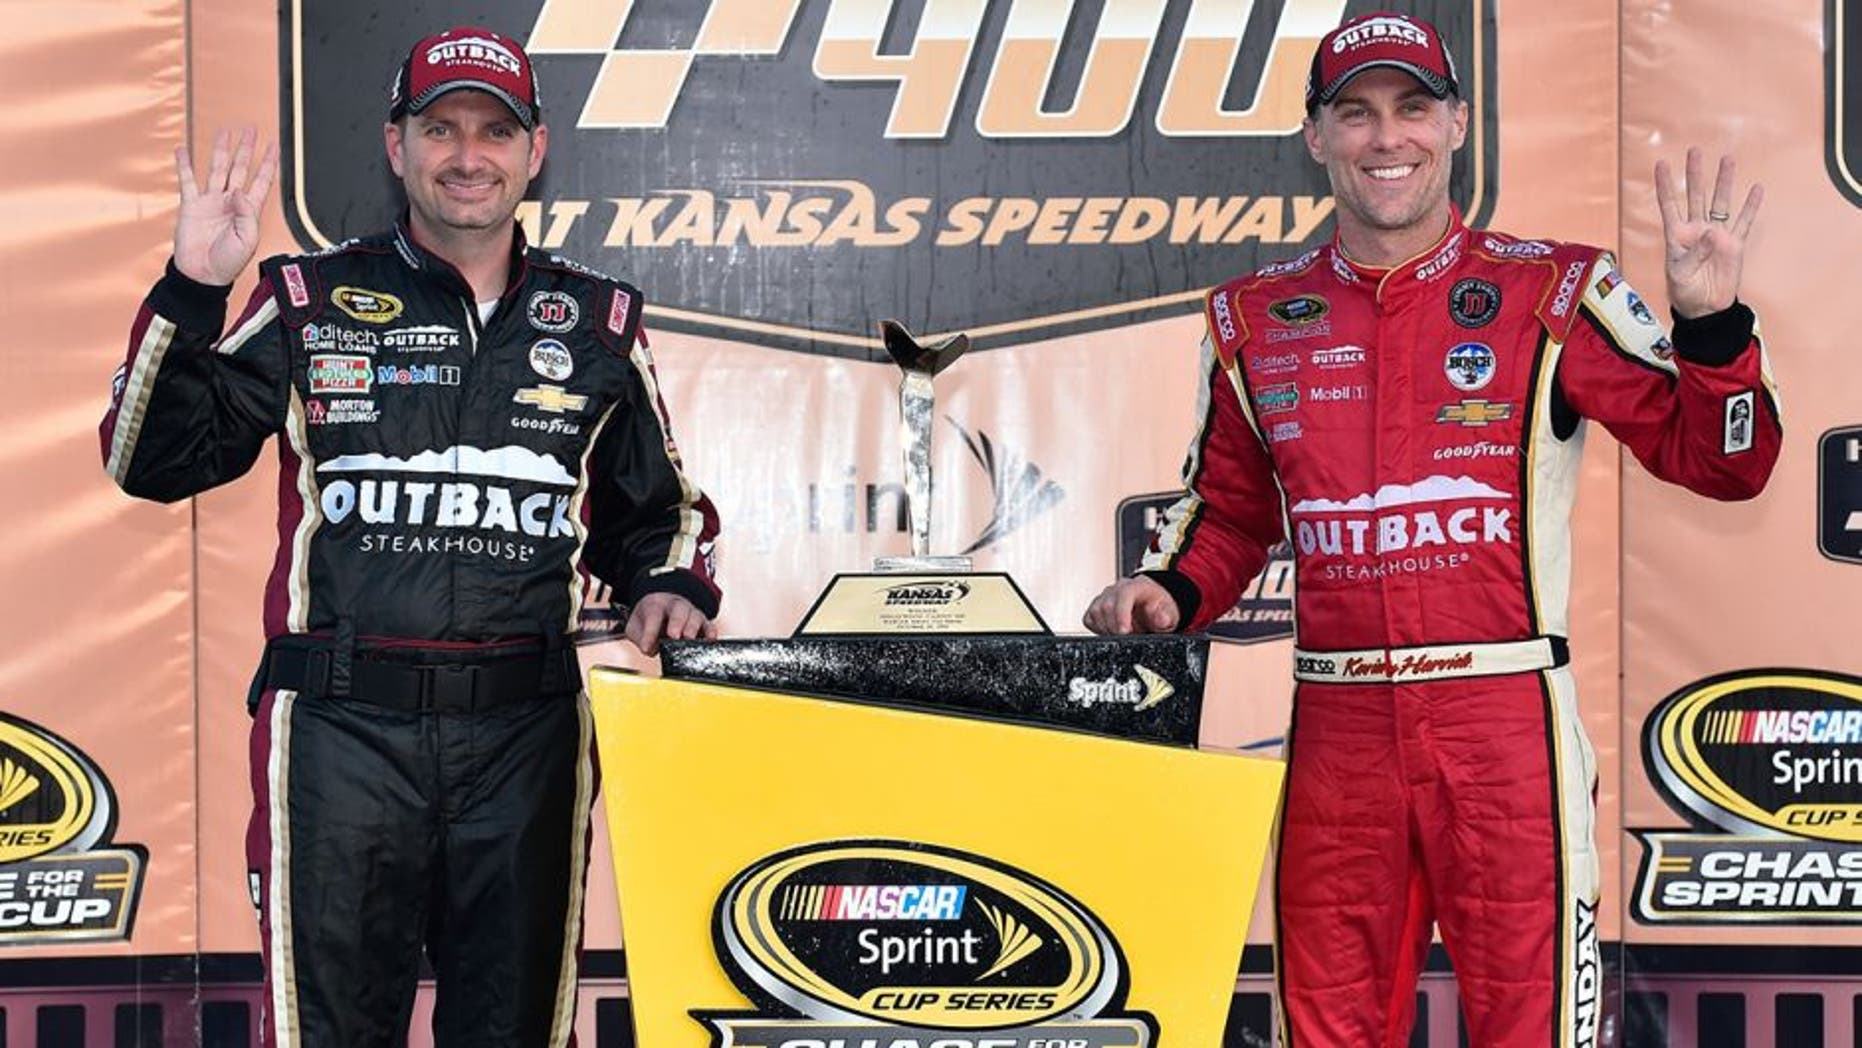 KANSAS CITY, KS - OCTOBER 16: Kevin Harvick, driver of the #4 Outback Chevrolet, and crew chief Rodney Childers pose with the trophy after winning the NASCAR Sprint Cup Series Hollywood Casino 400 at Kansas Speedway on October 16, 2016 in Kansas City, Kansas. (Photo by Jason Hanna/Getty Images)